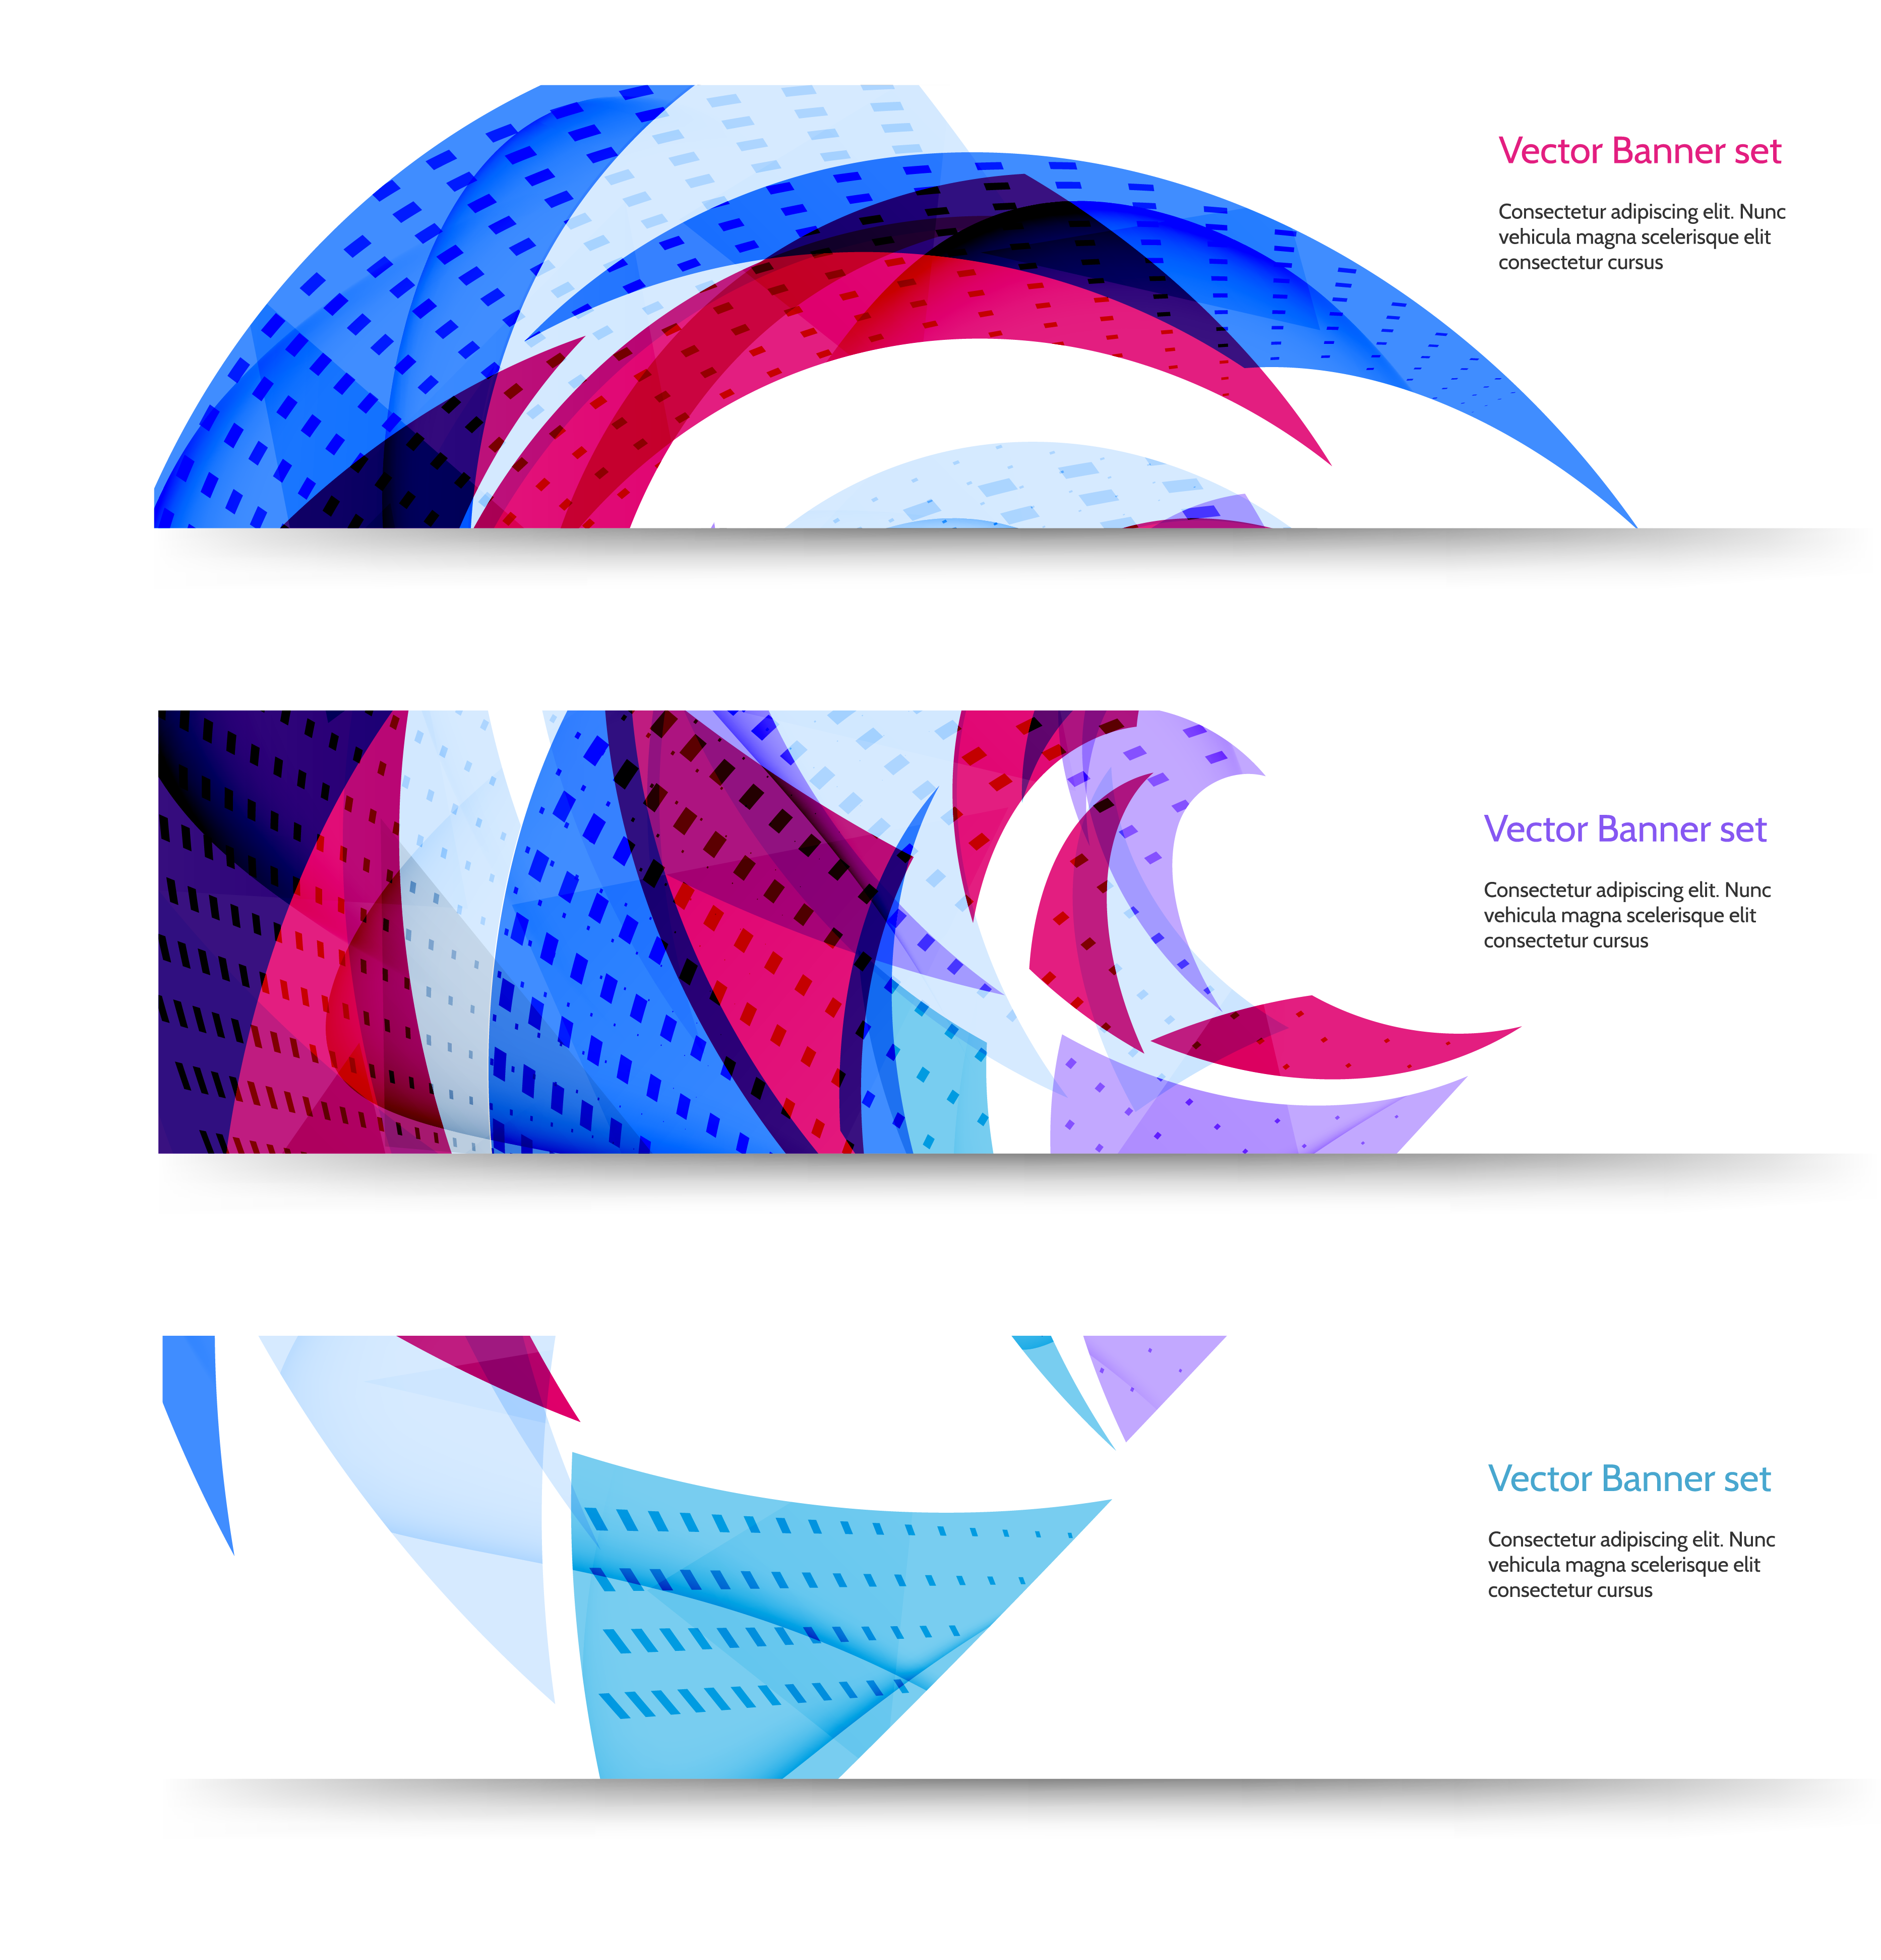 Vector banner design png. Web geometry euclidean banners